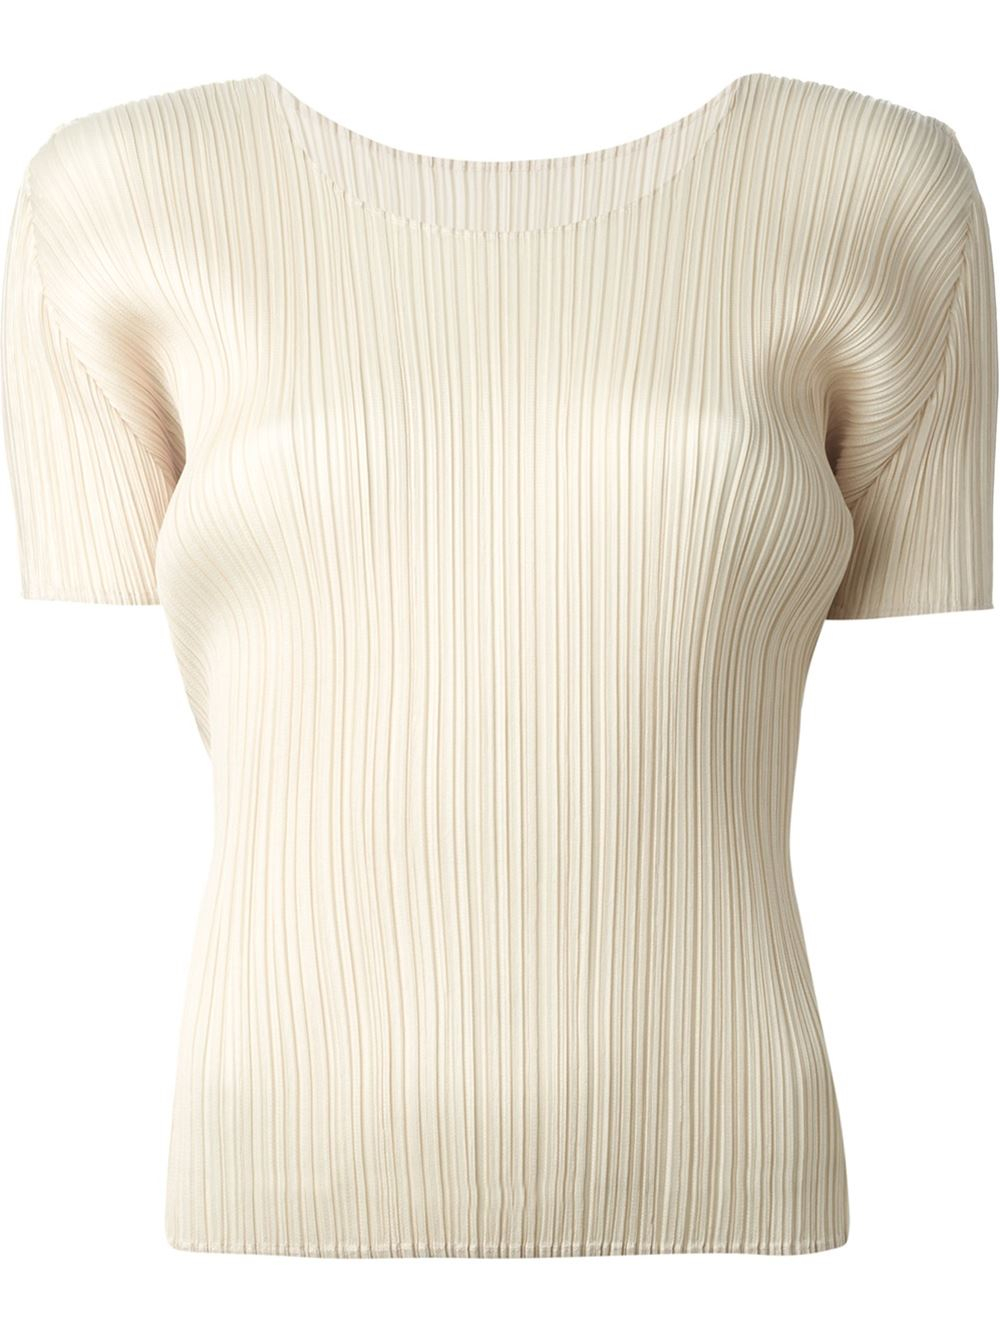 31745aeabc50f Pleats Please Issey Miyake Pleated T-Shirt in Natural - Lyst